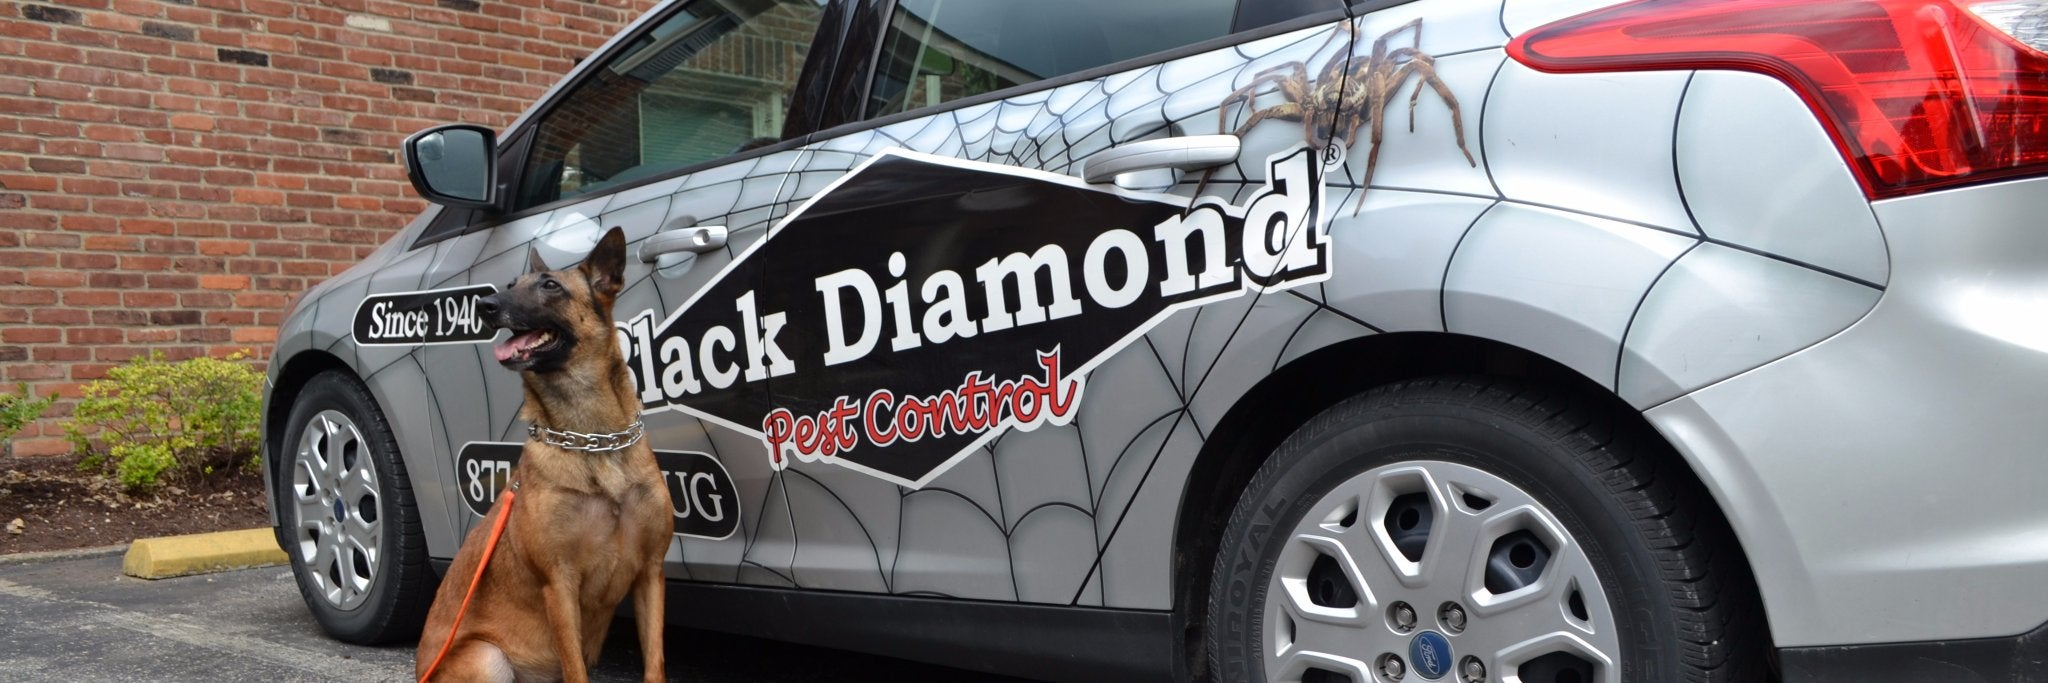 Black Diamond Pest Control